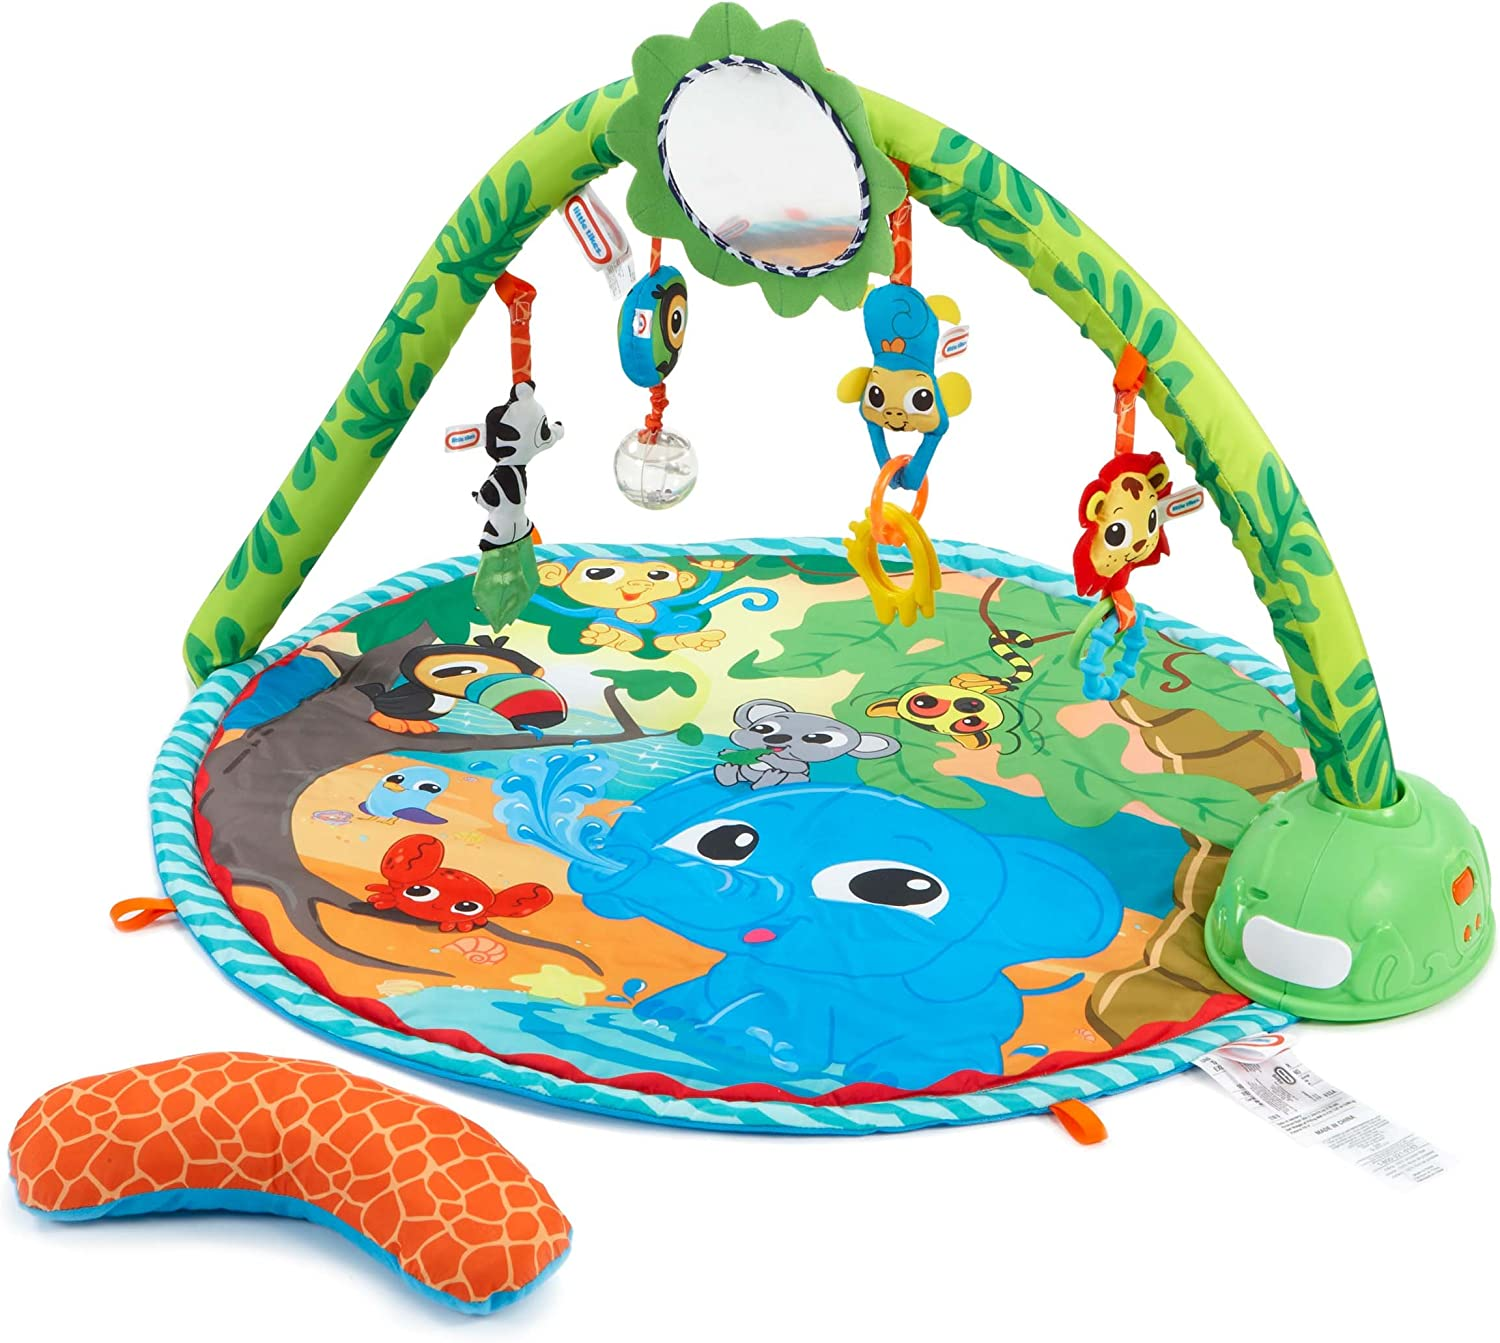 Little Tikes Baby  Sway 'n Play Activity Gym